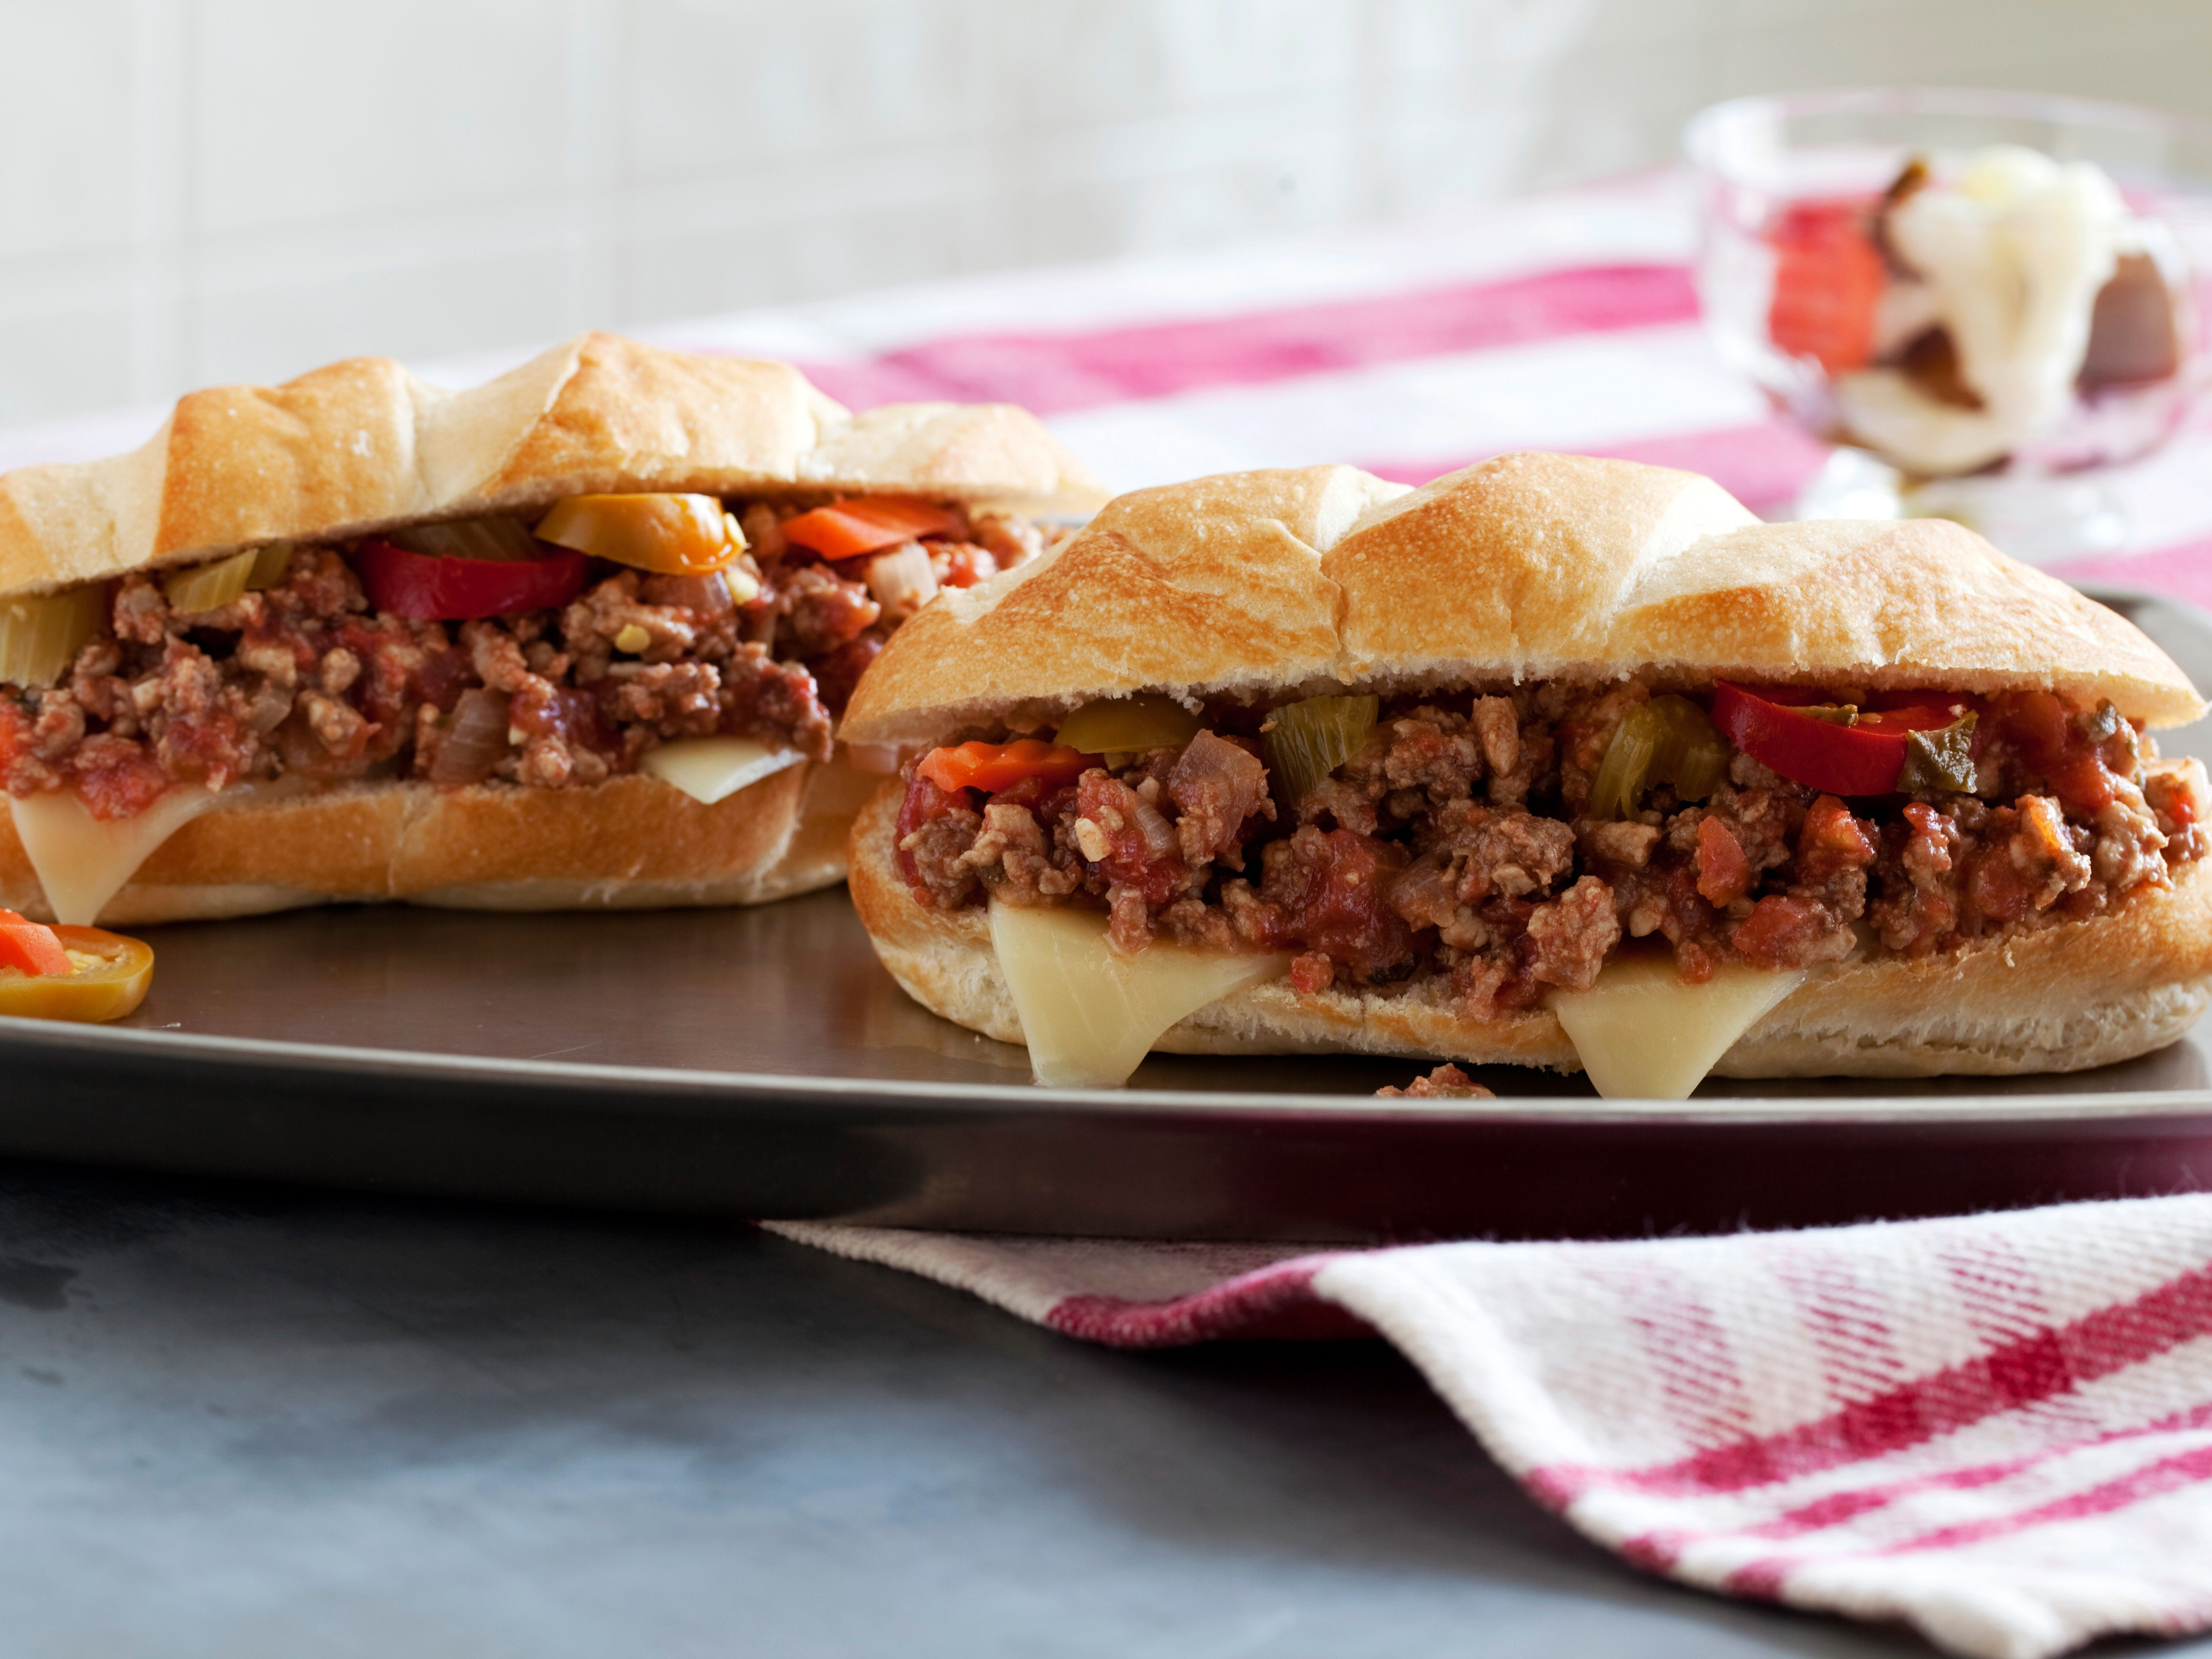 """The Sandwich King's Italian Sloppy Joes : Jeff Mauro says, """"This is a classic bolognese, sloppied and turned into an awesome sandwich."""" You can make it up to two days in advance and double the recipe for a crowd. And feel free to substitute ground turkey or all beef for the beef, pork and veal combo this recipe calls for."""